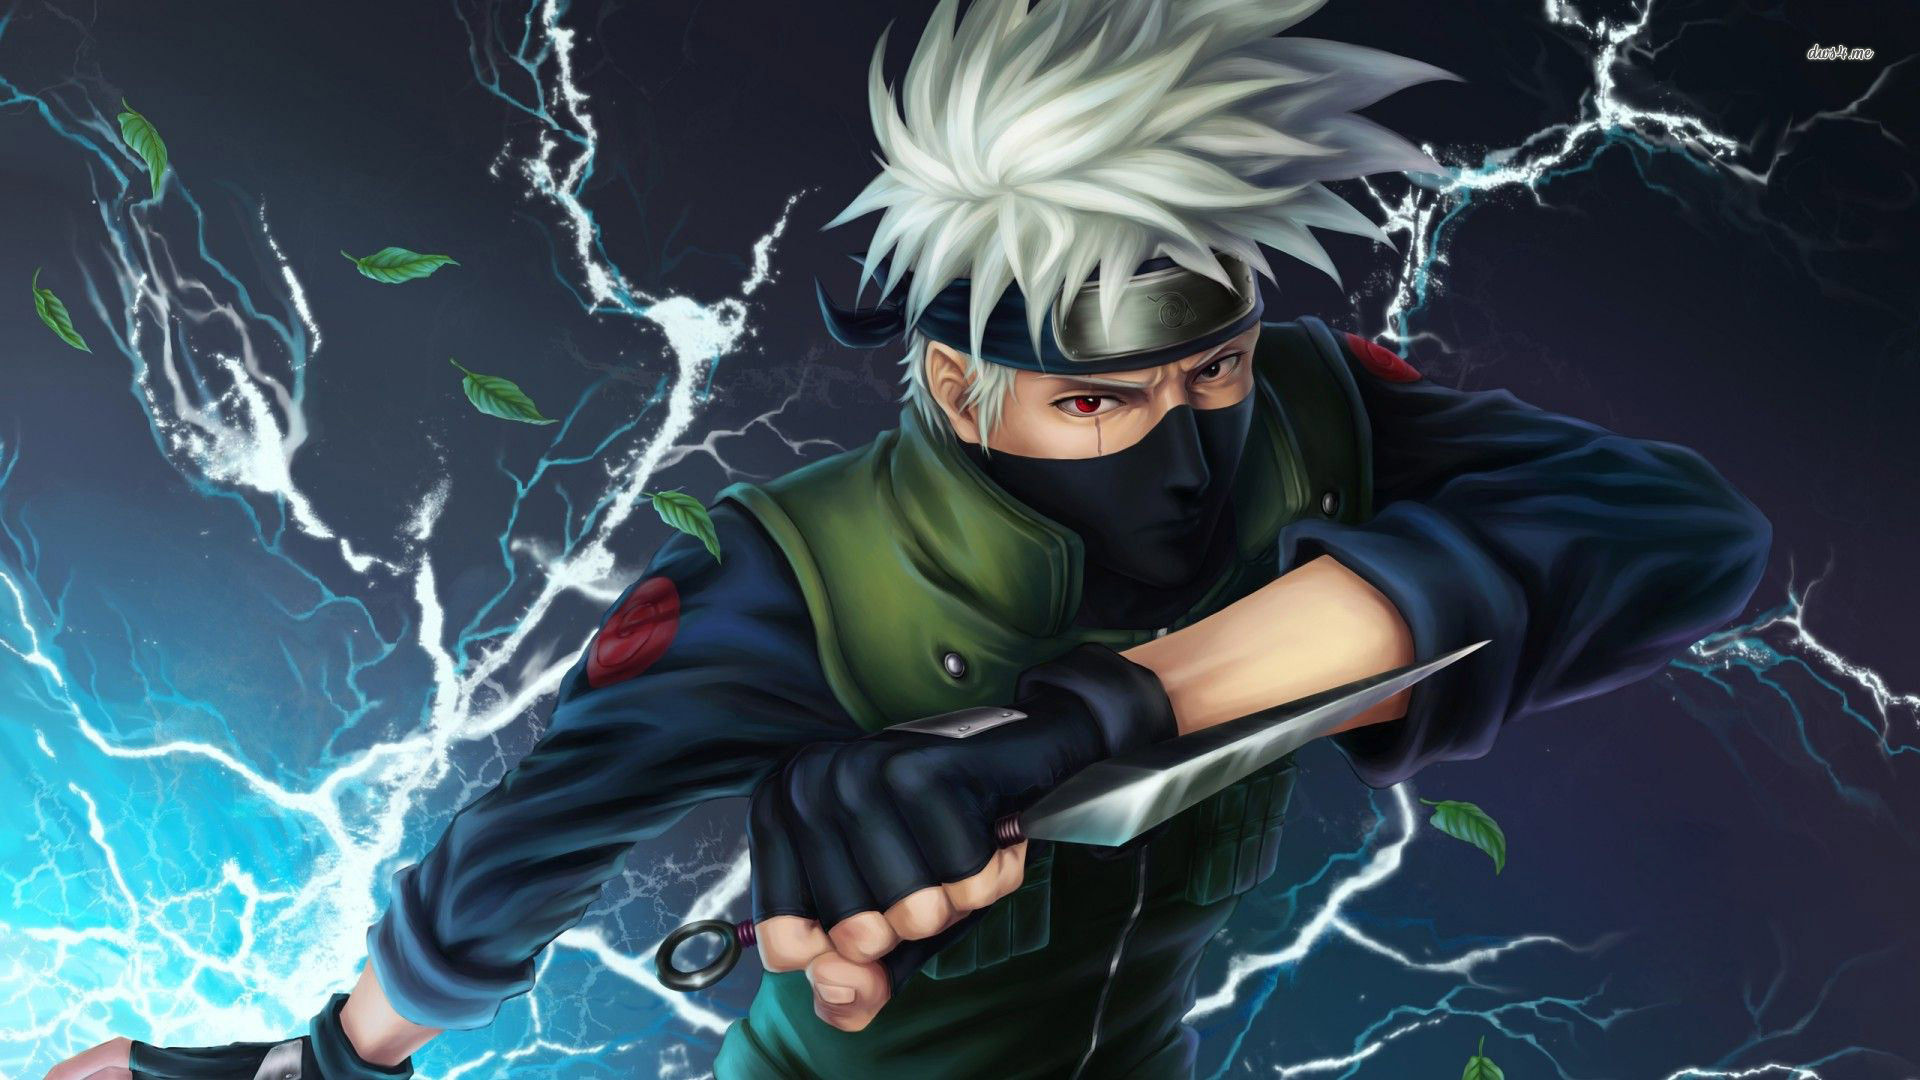 kakashi wallpaper desktop   wallpapersafari